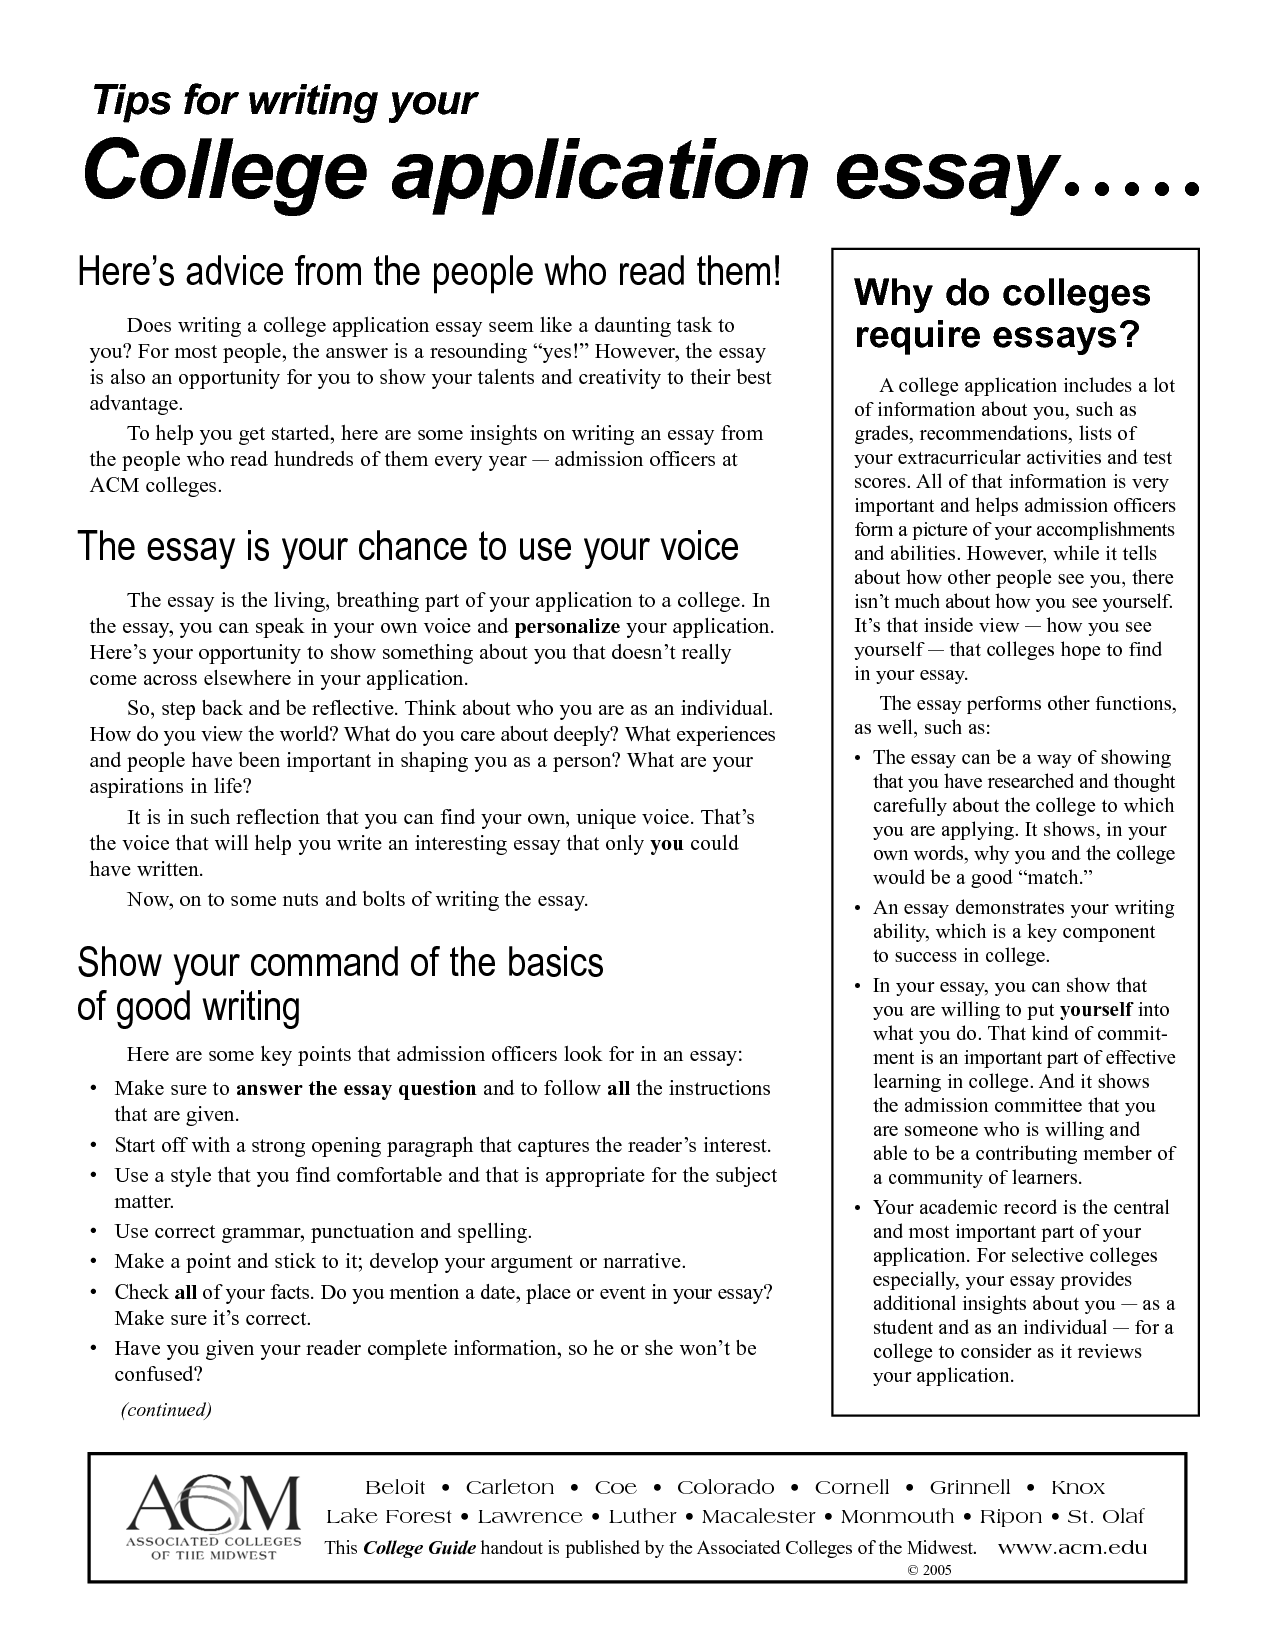 msoe application essay prompt How to start your college application essay nearly all college applications will ask of you a statement describing your desires to attend their august institution.